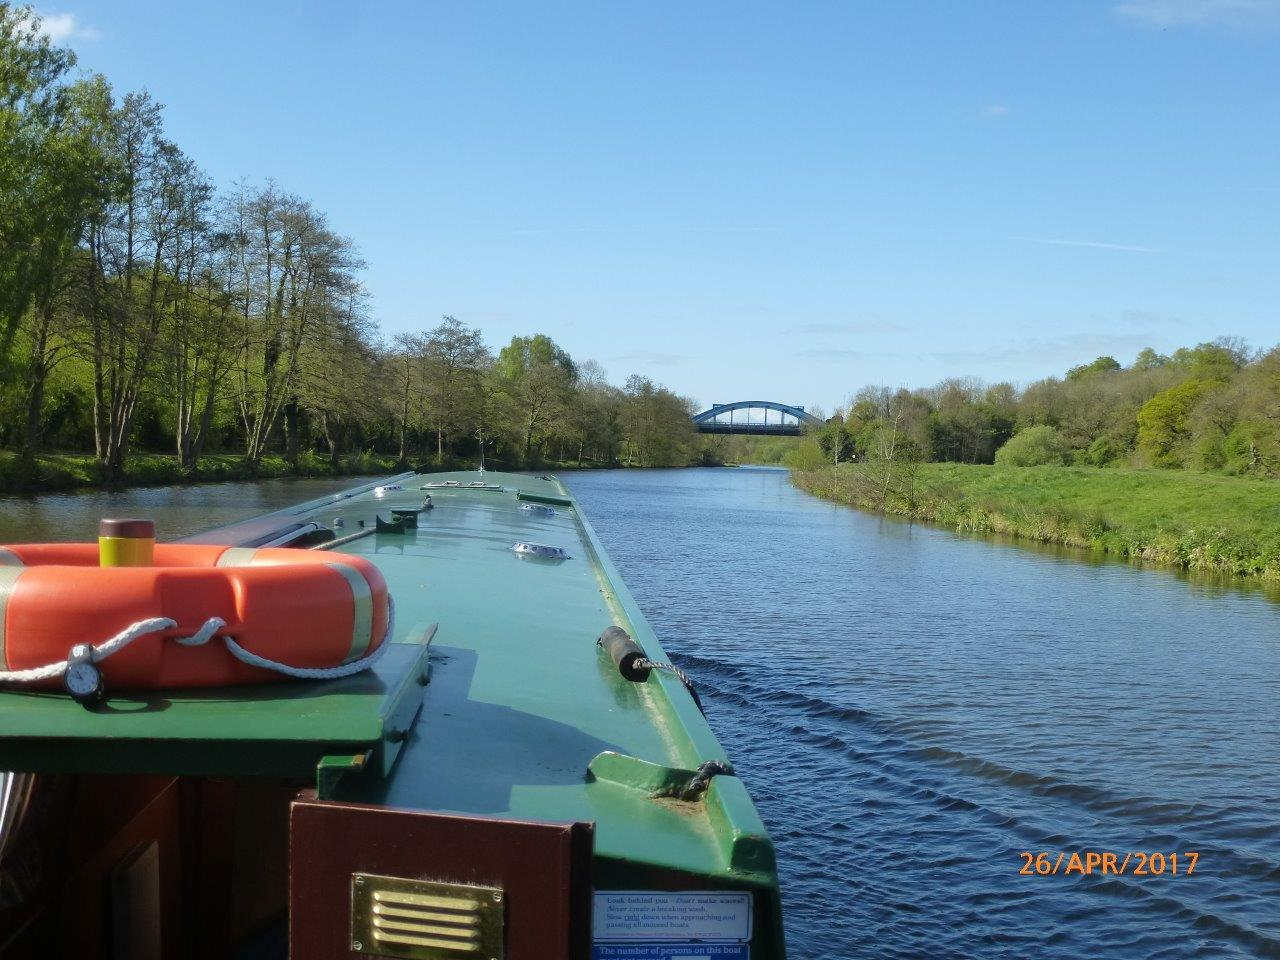 River Weaver approaching Northwich bypass bridge